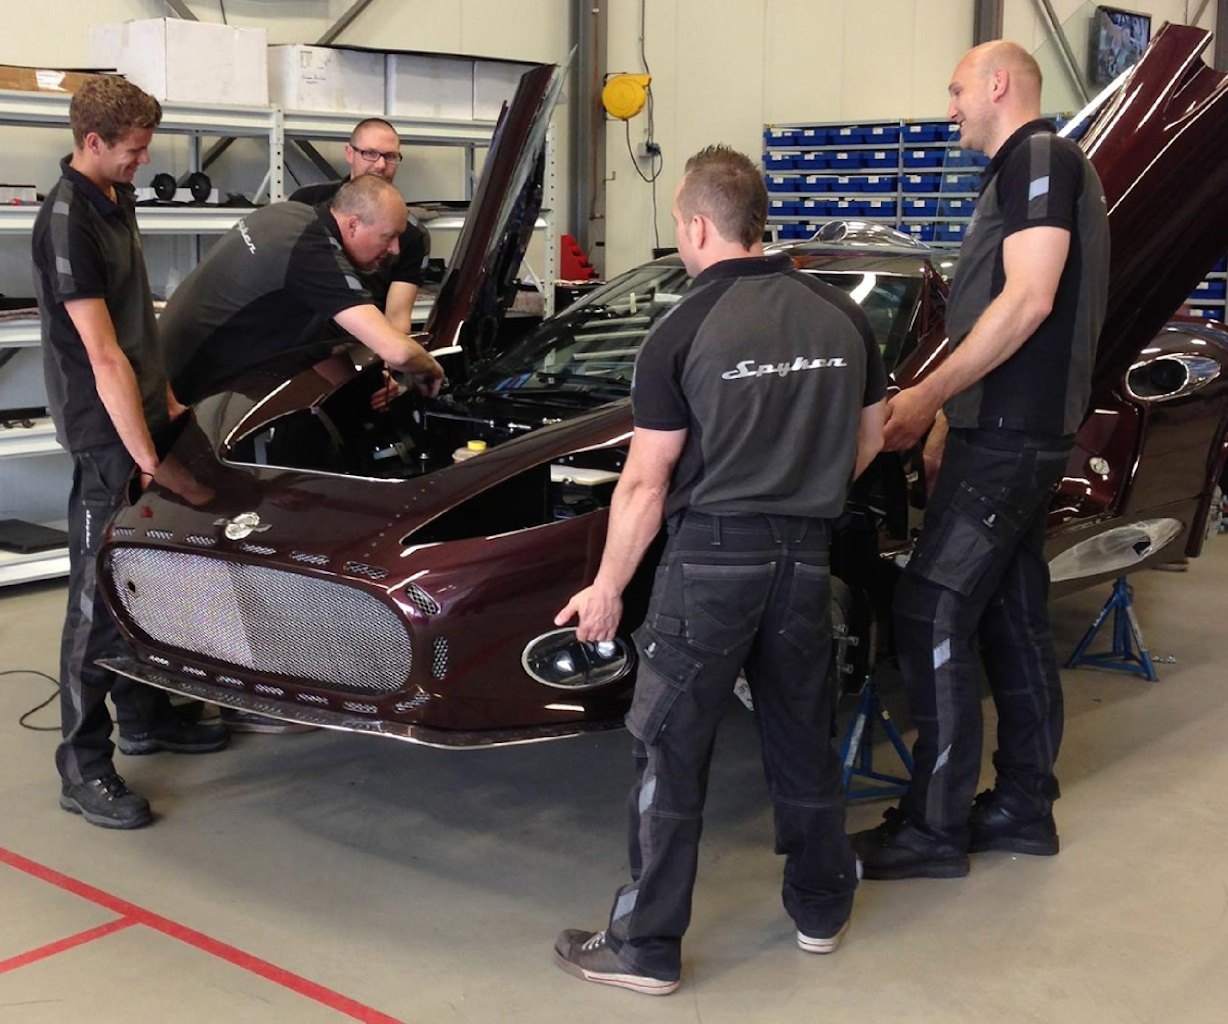 The custom vehicle being assembled by Spyker colleagues